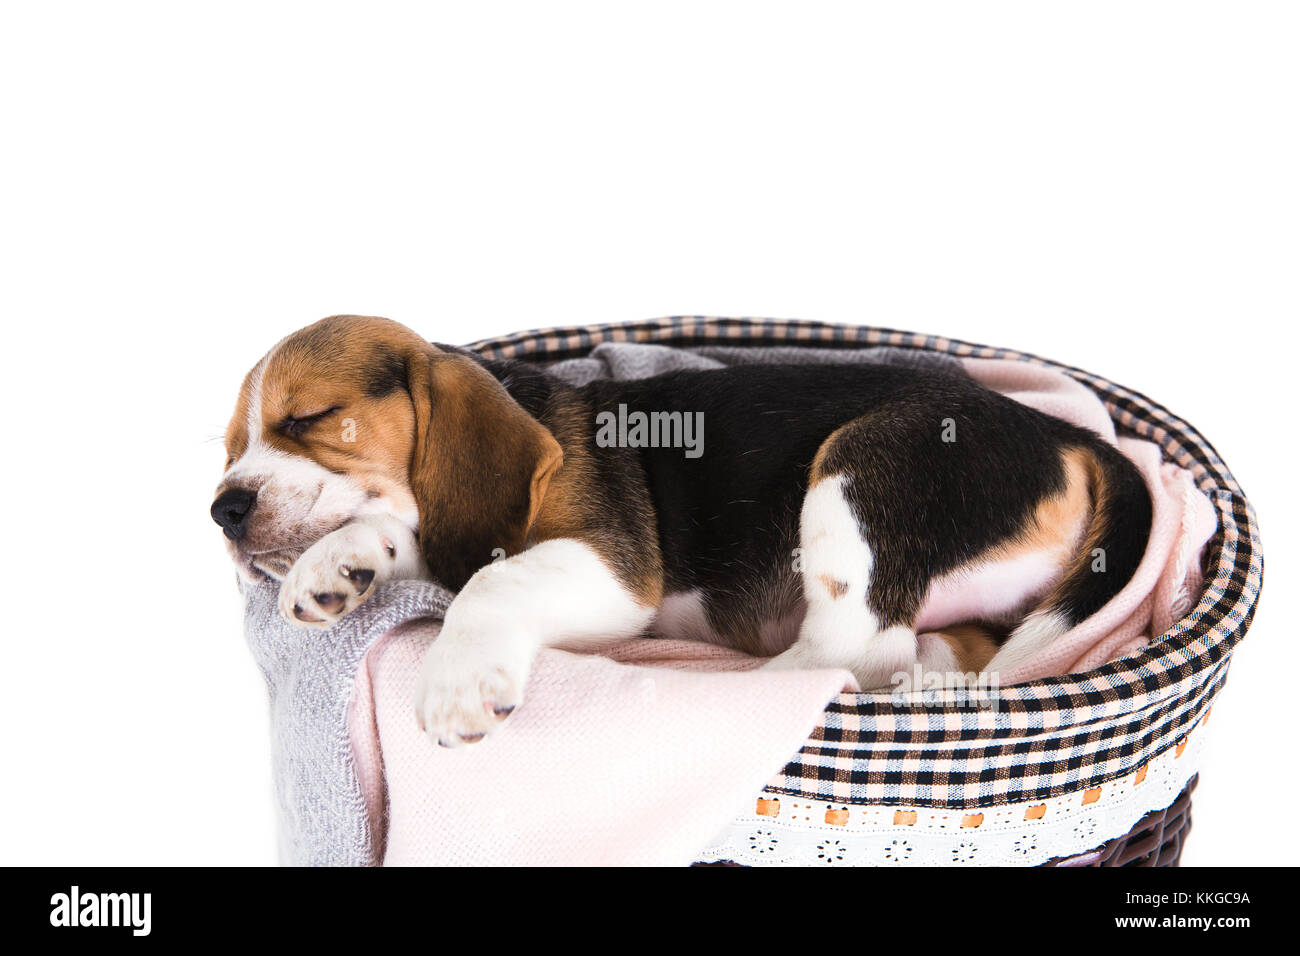 Cute beagle puppy sleeping in small basket on white background. Wicker basket decorated with checkered towel. No - Stock Image